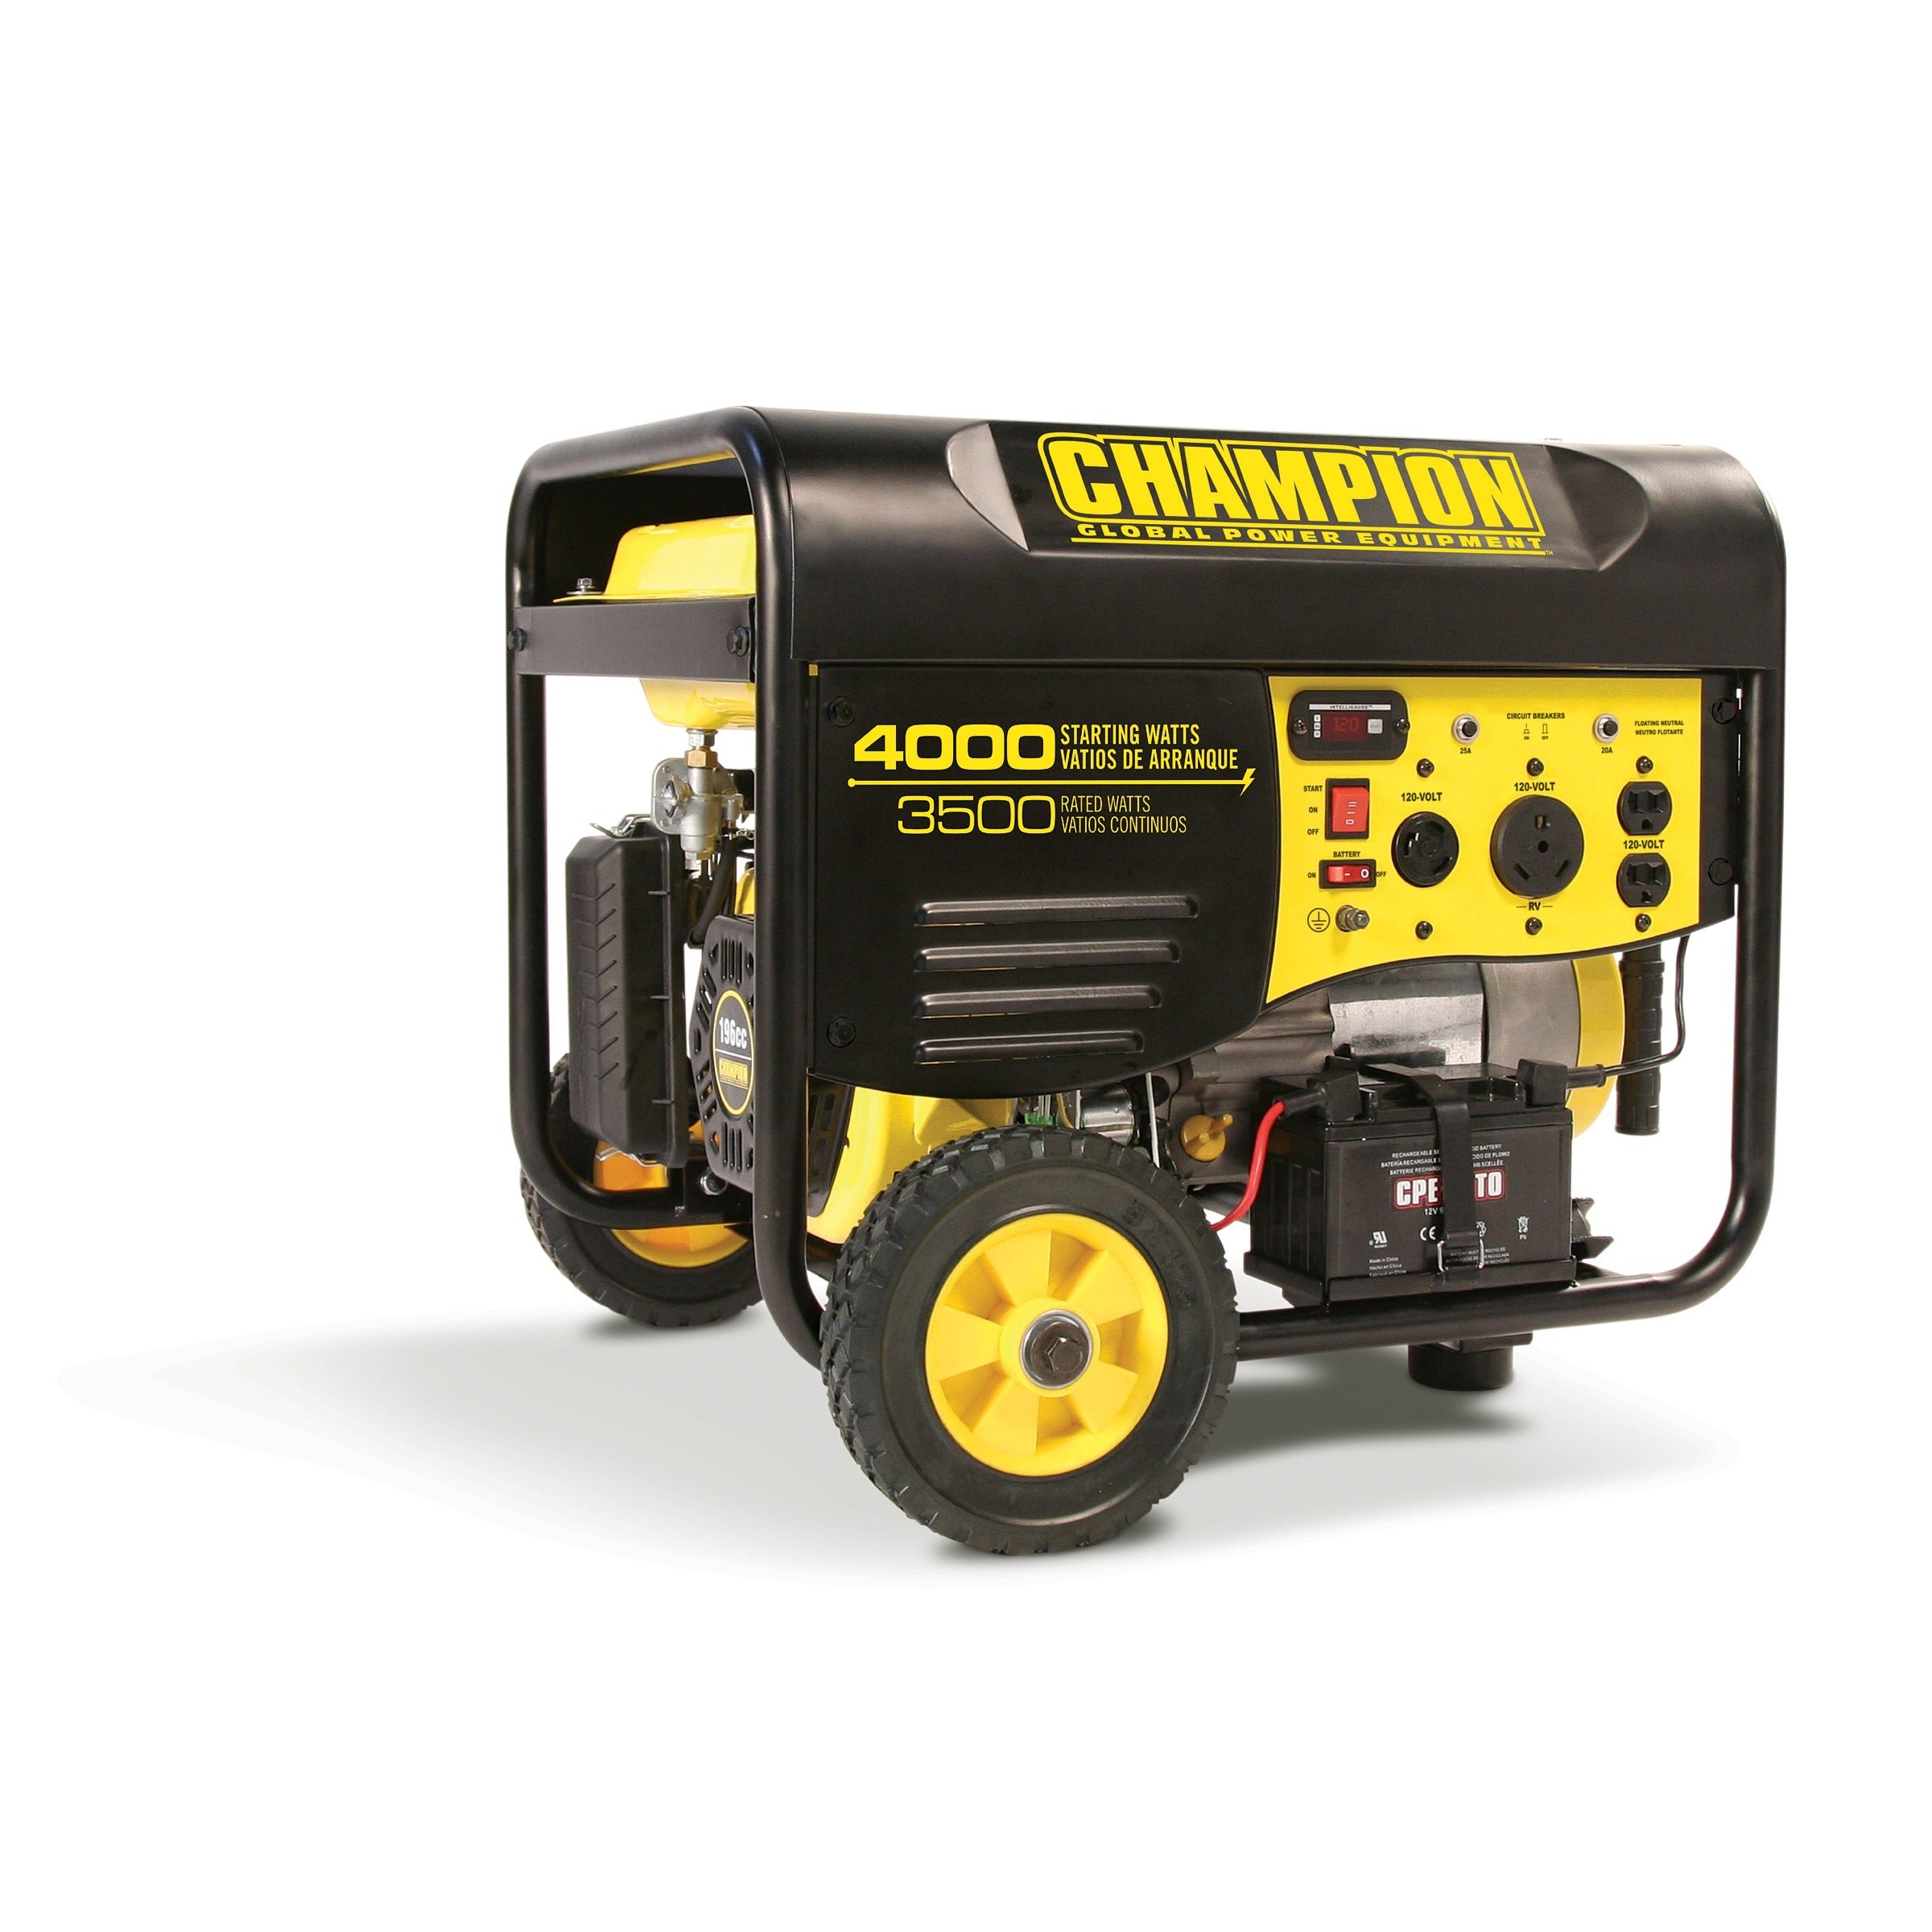 Overstock.com Champion 3500 Watt Portable Generator with Remote Electric Start & RV Outlet at Sears.com